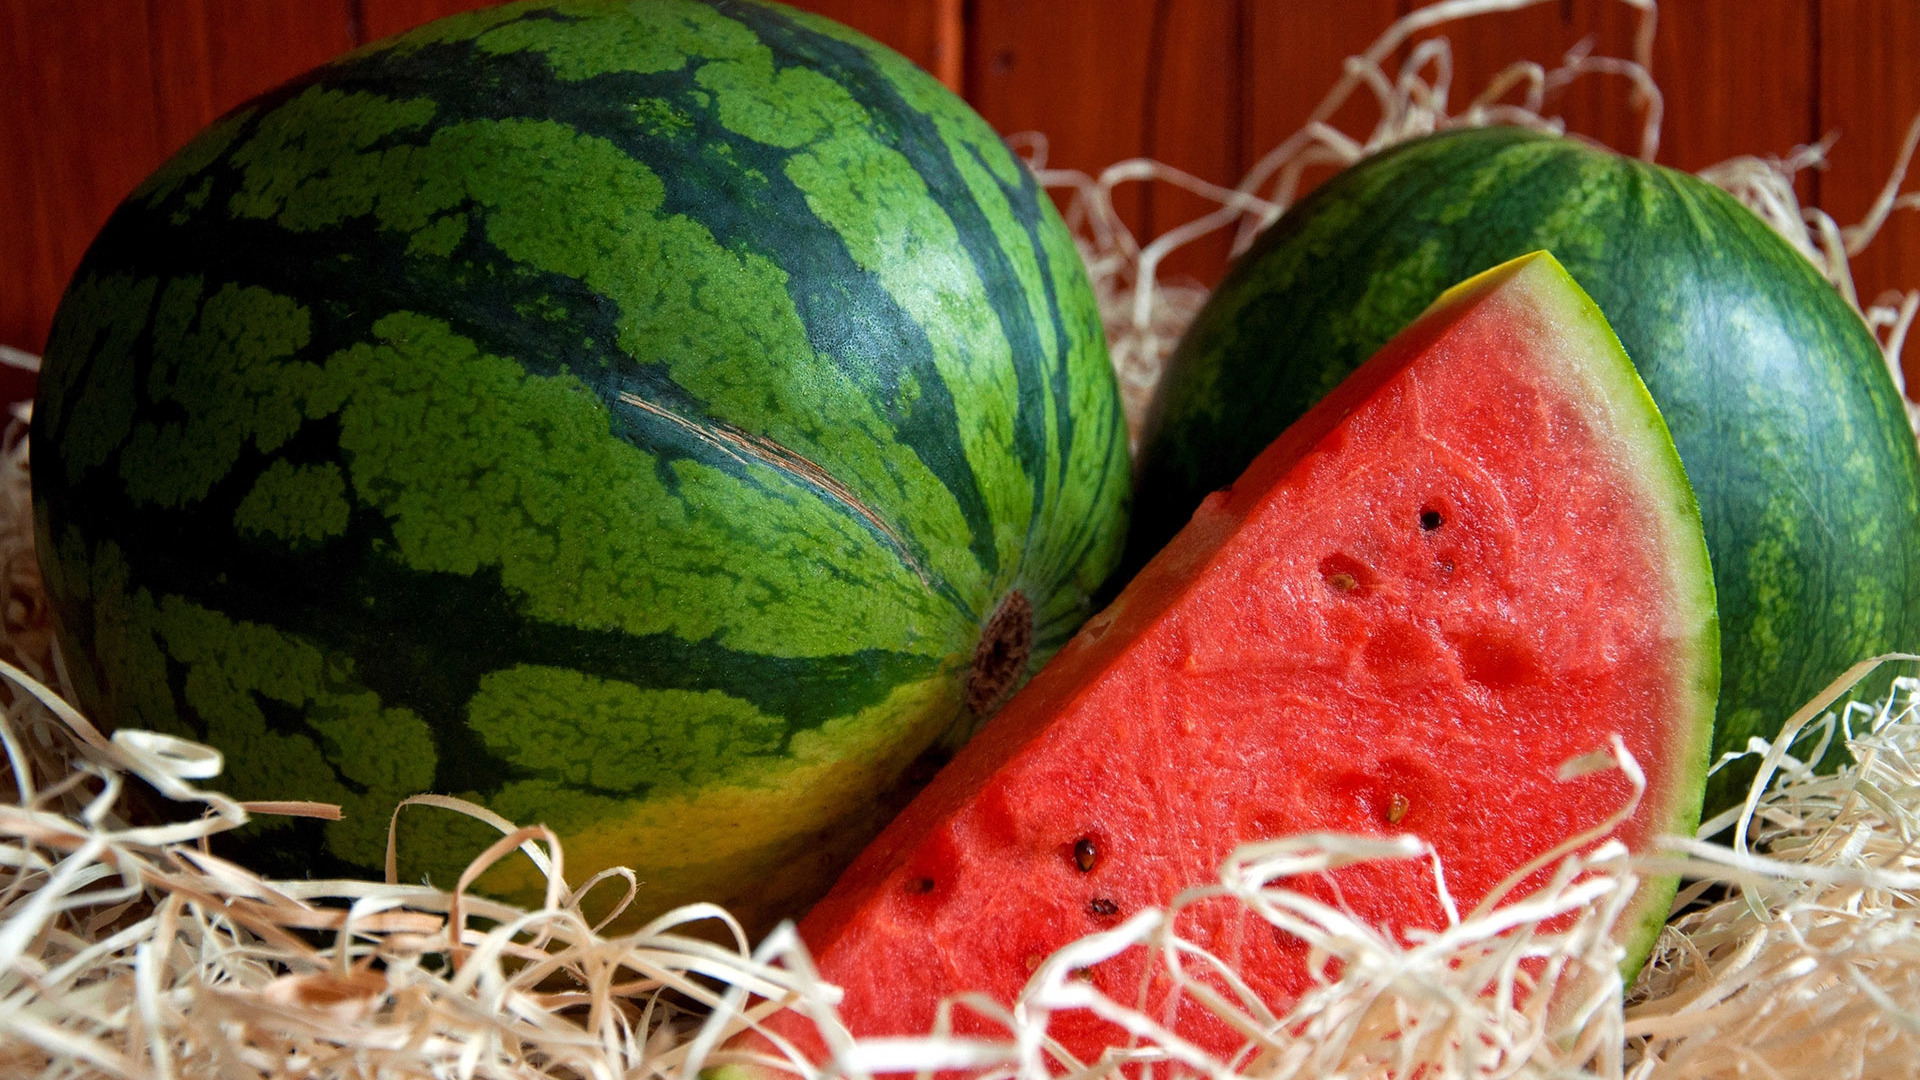 watermelon-photography-hd-wallpaper-1920x1080-36452